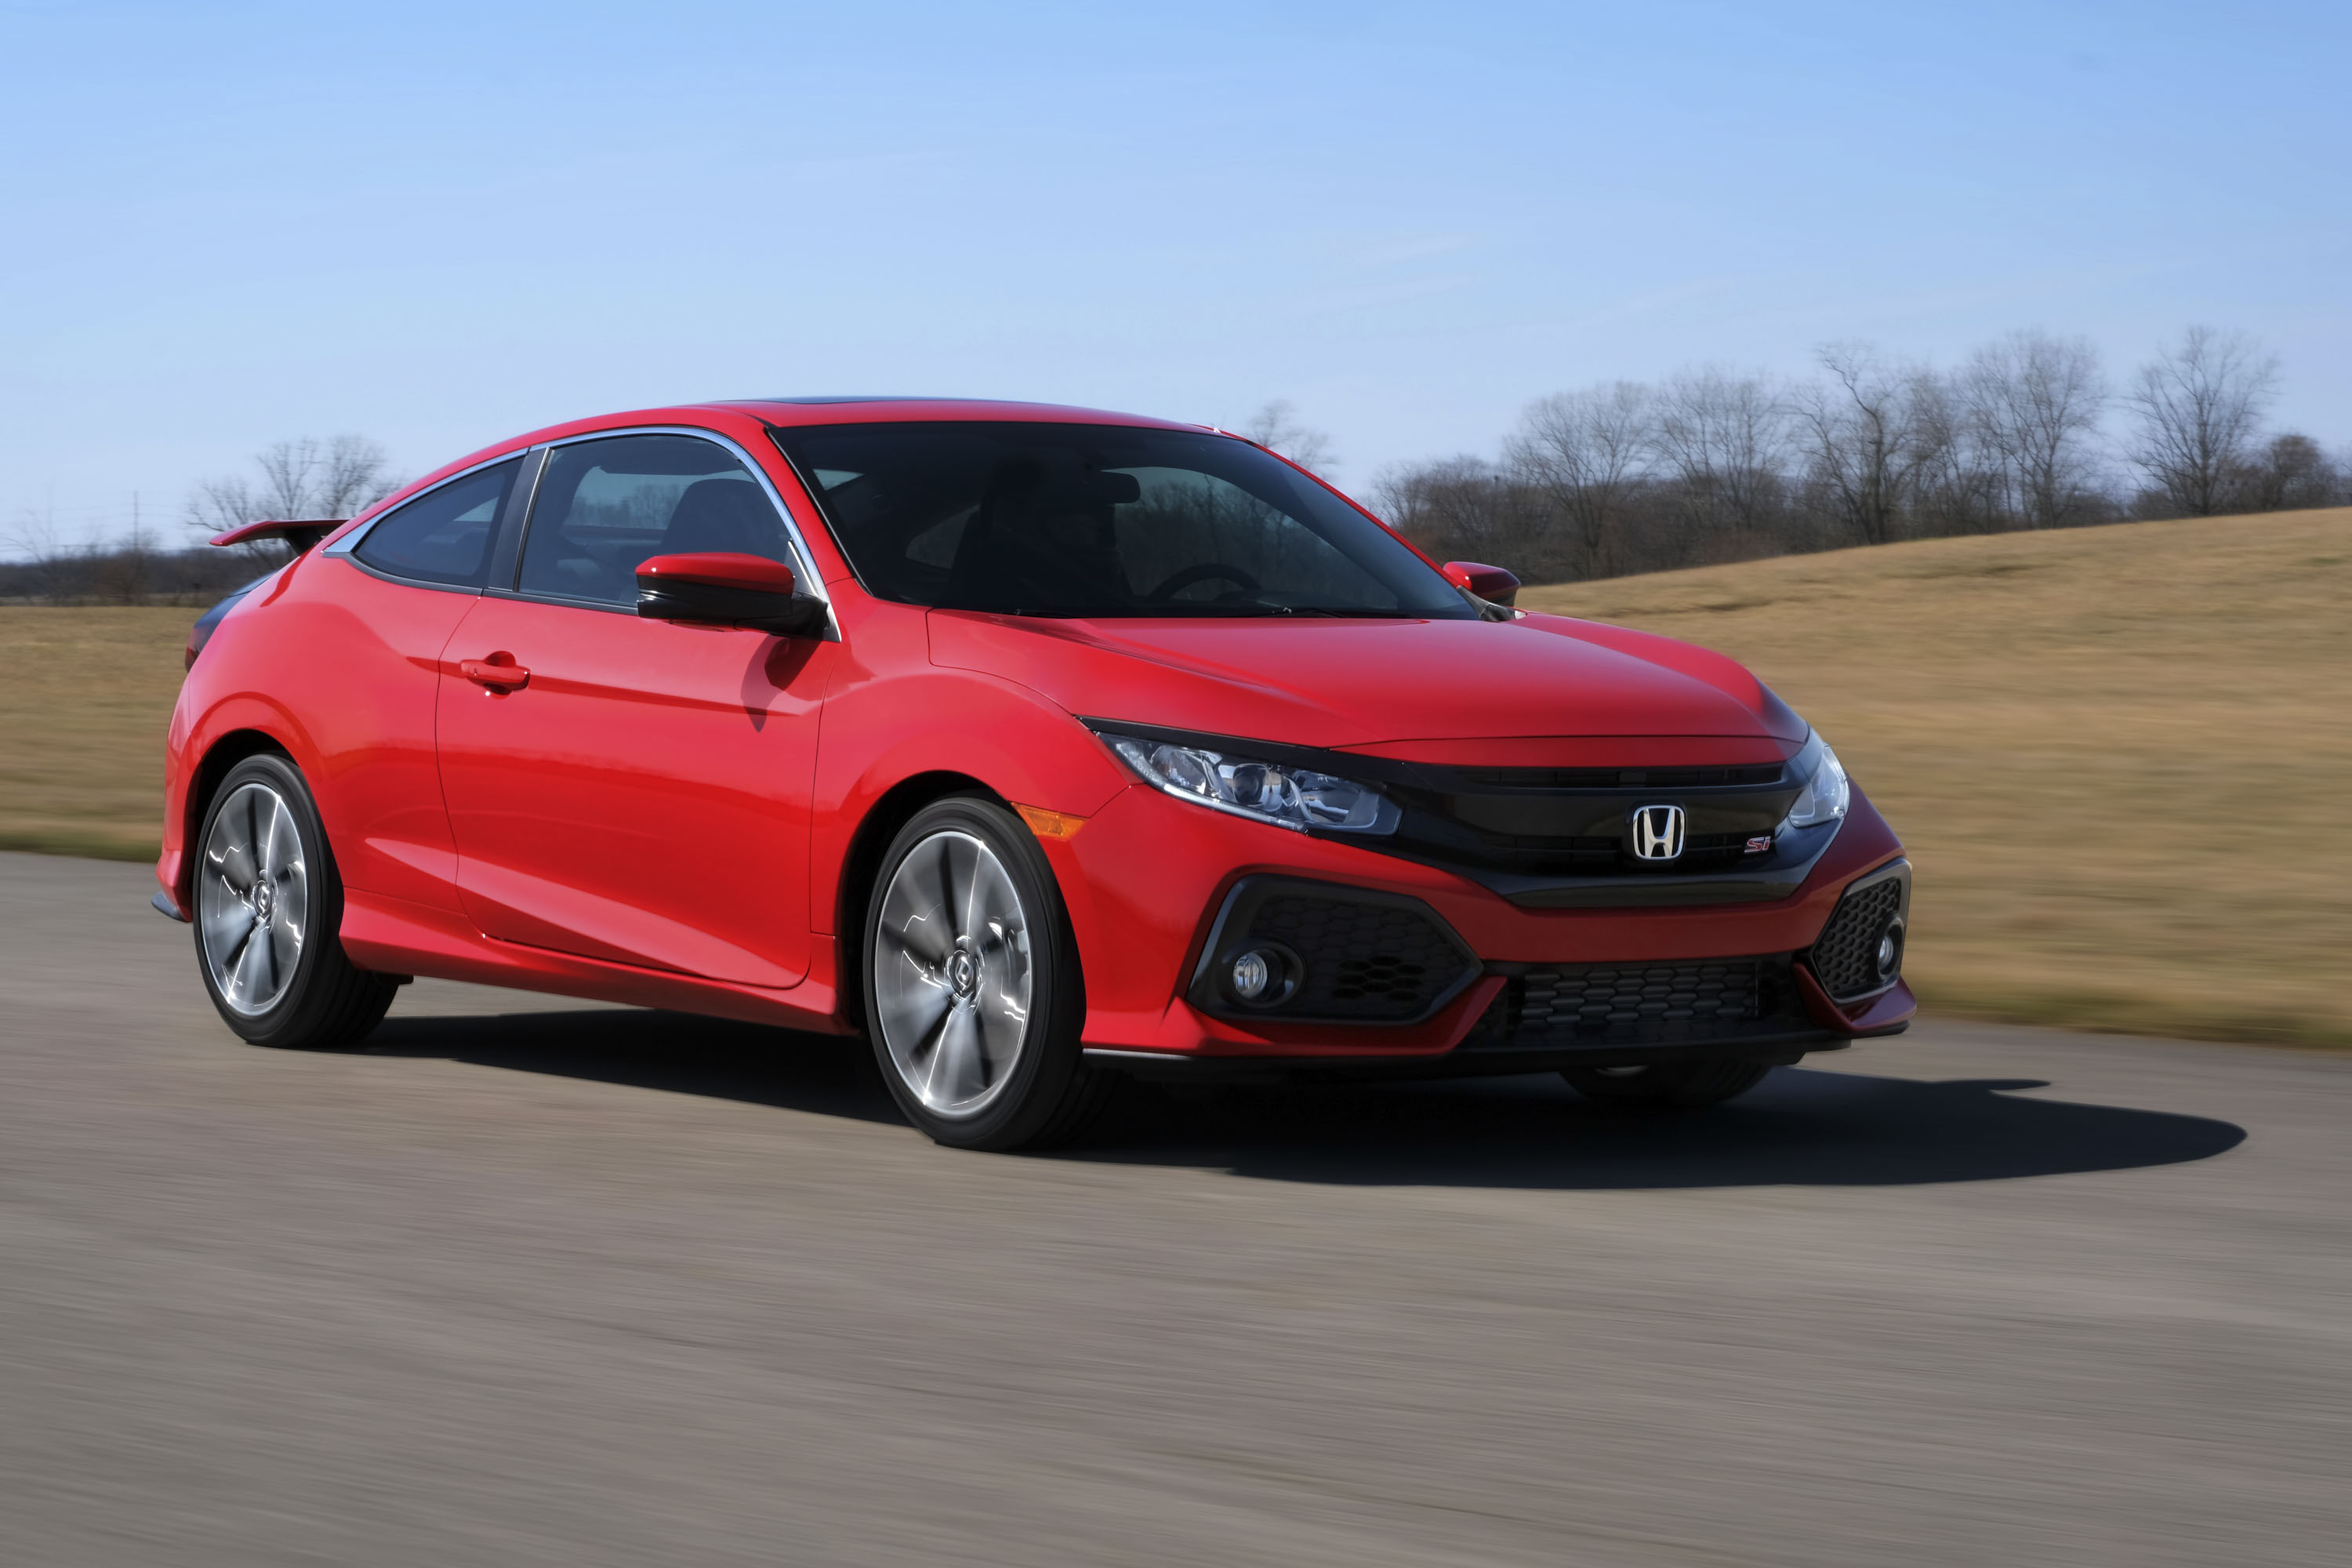 2018 Honda Civic Si Coupe   Top Speed. »